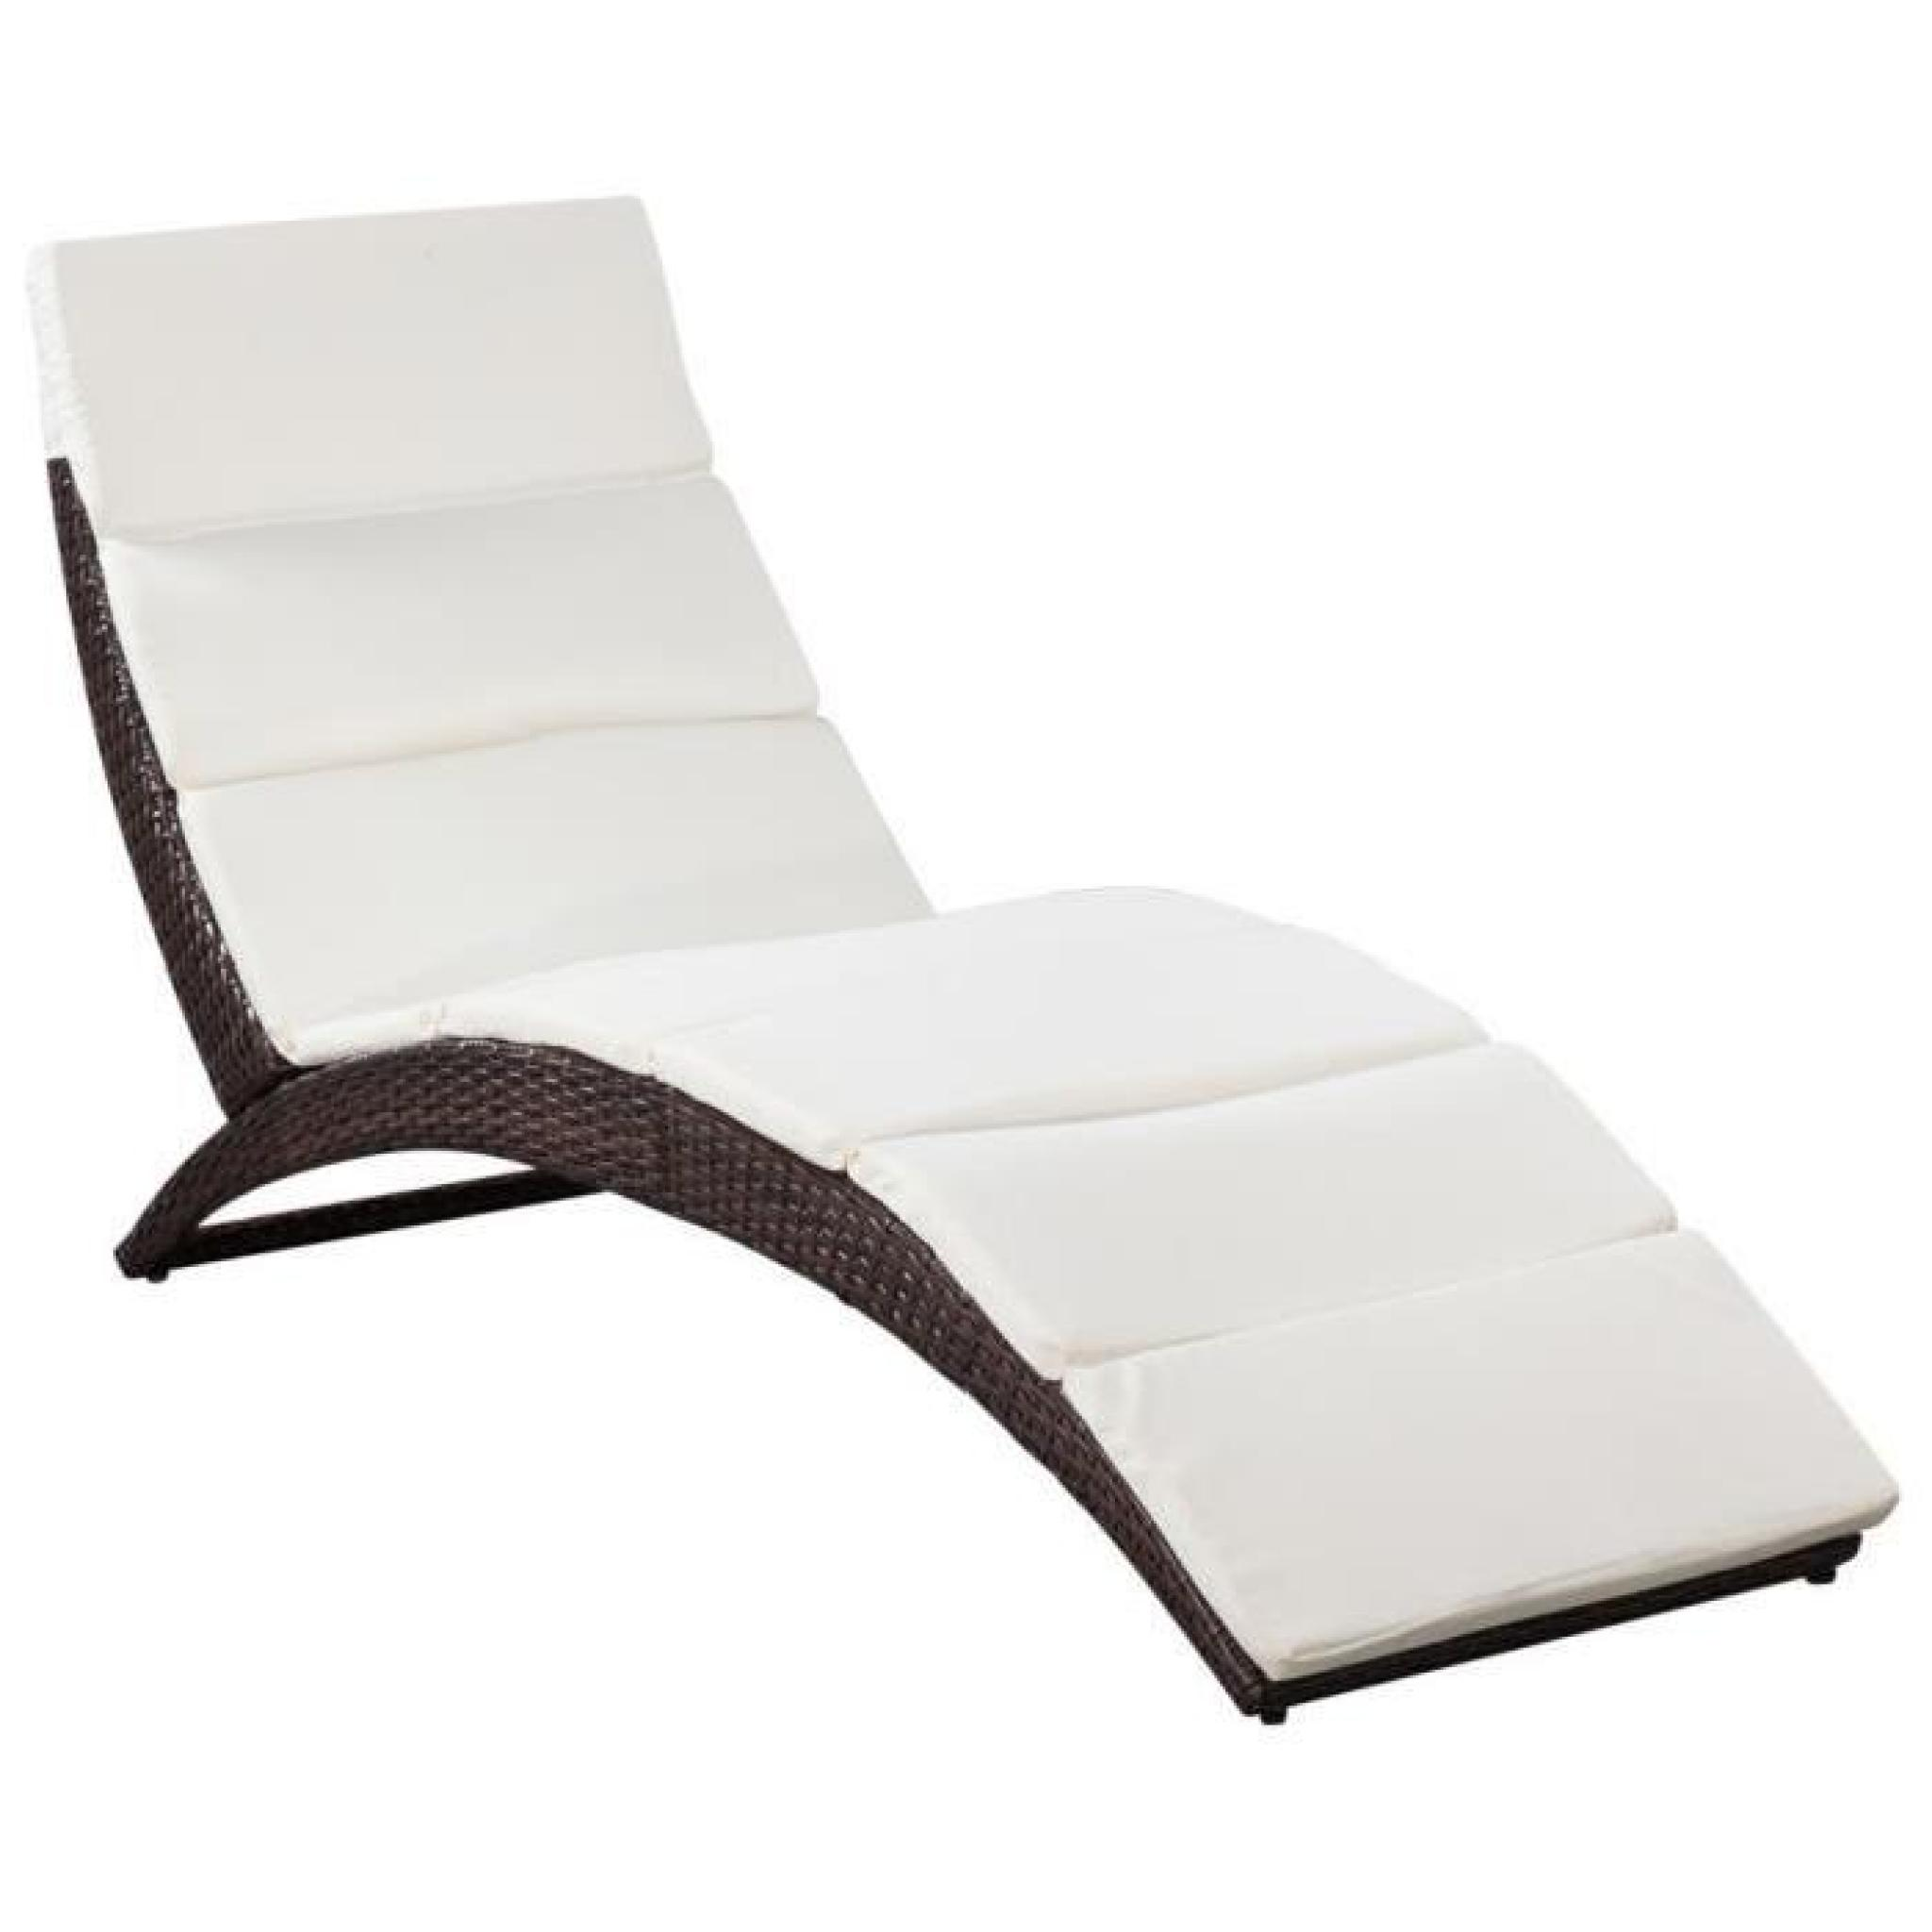 chaise longue pliable avec coussin en poly rotin marron achat vente transat de jardin pas cher. Black Bedroom Furniture Sets. Home Design Ideas